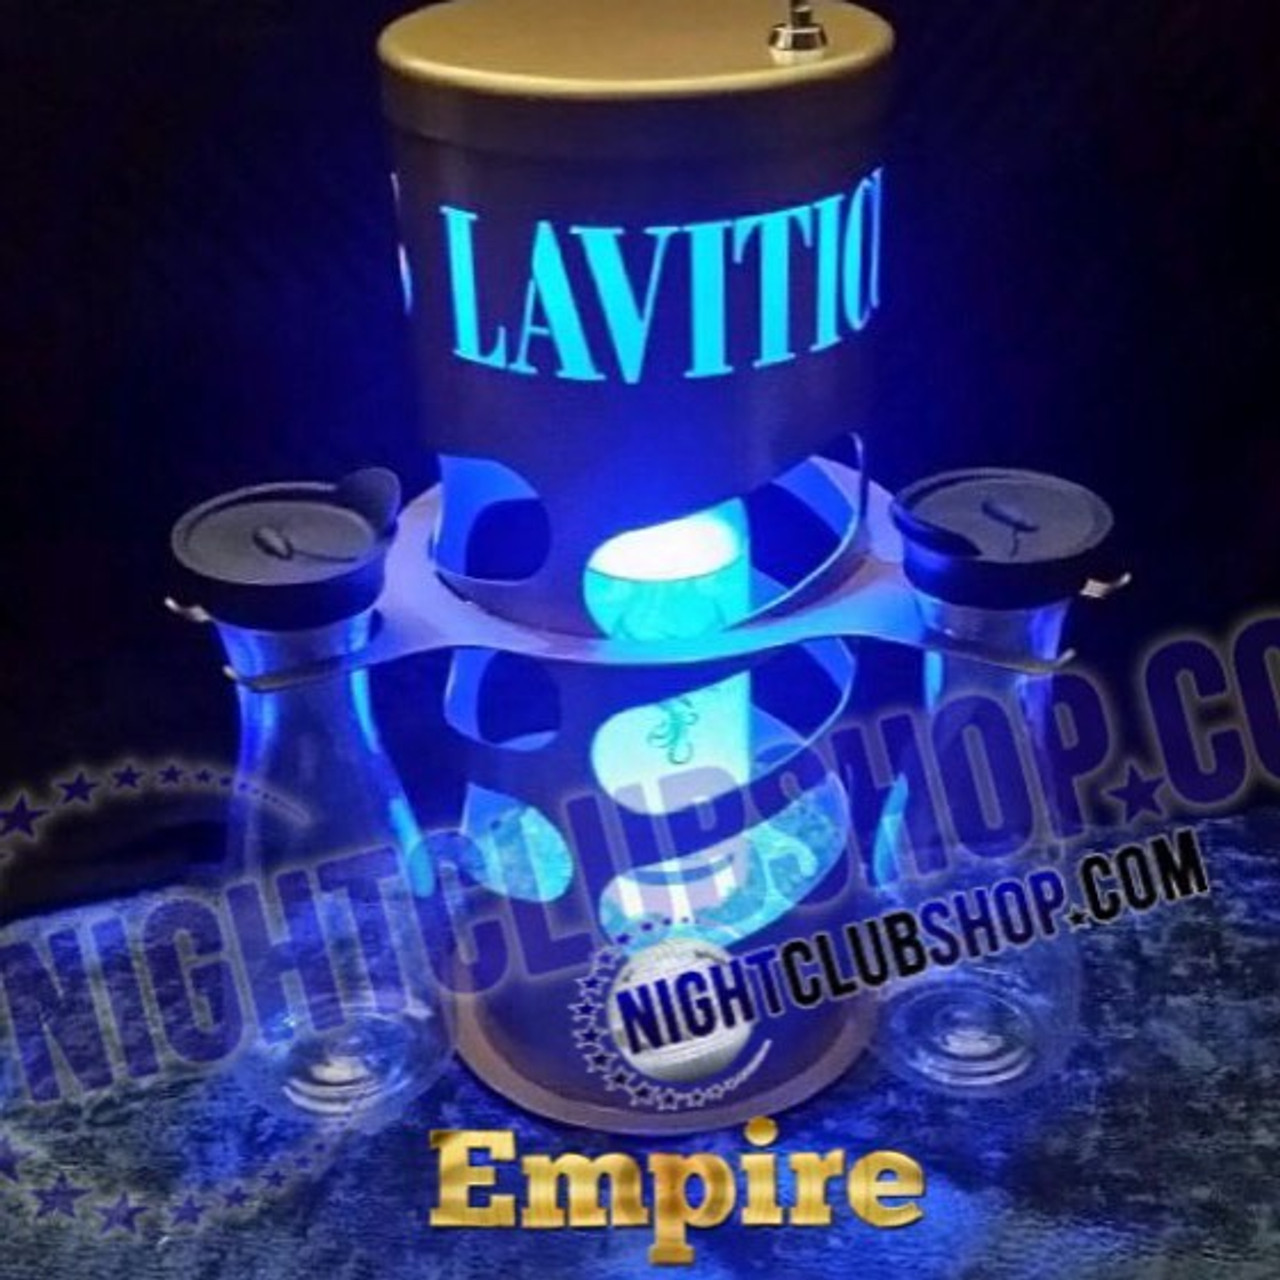 Virginia, washington, North carolina, Law, bottle secure, champagne, Lounge,Bar,VIP, caddie,Tray, Bottle, Liquor, Lock, cage, serving, Nightclub, Bottle Lock, Bottle cage